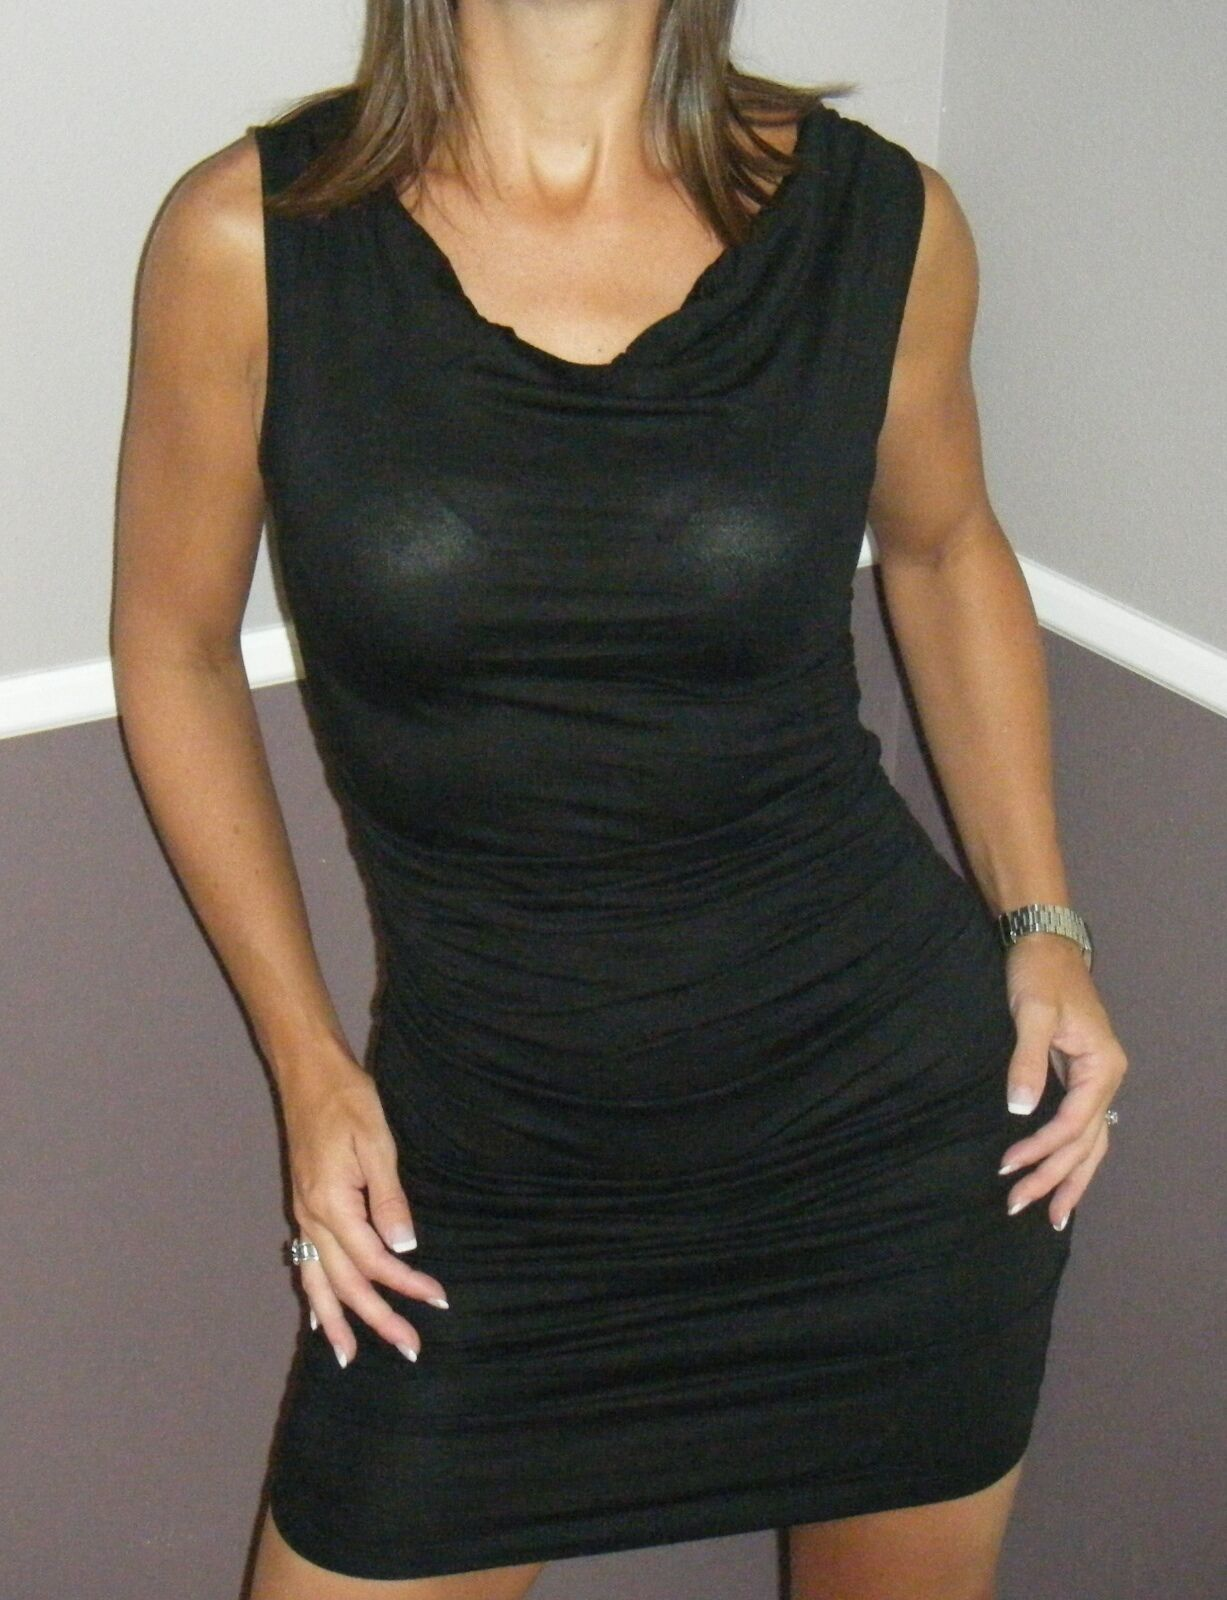 Very Sexy Little Black Mini Dress Cowl Neck Form Fitting Thin Ruched Sides S/M/L